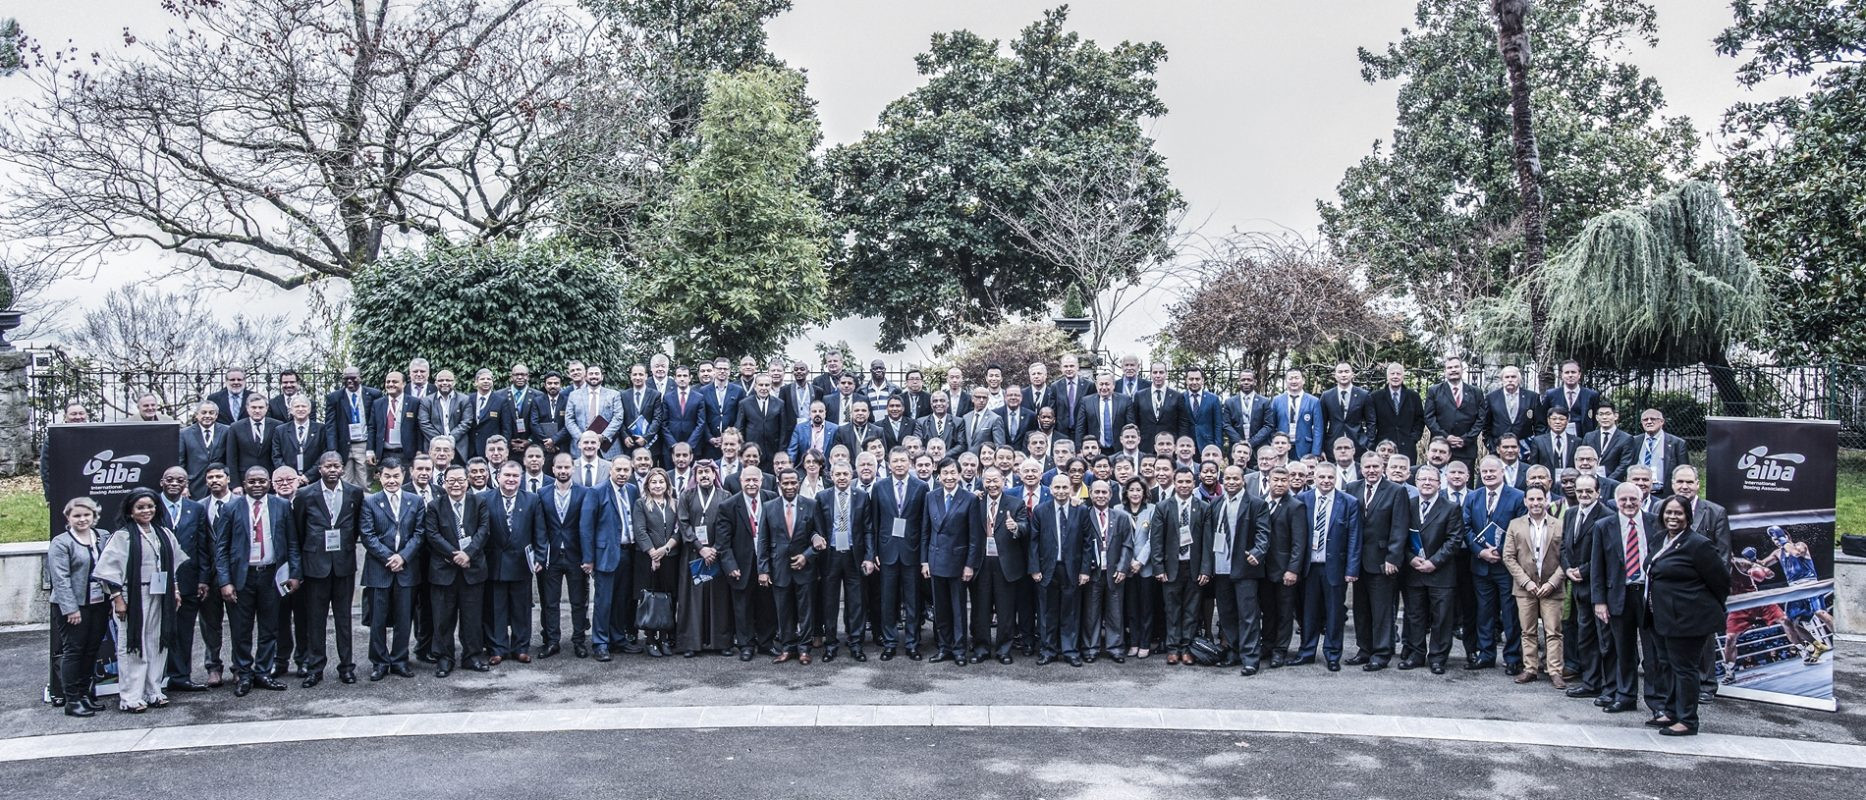 AIBA delegates pictured at an Extraordinary Congress in December 2016 ©AIBA